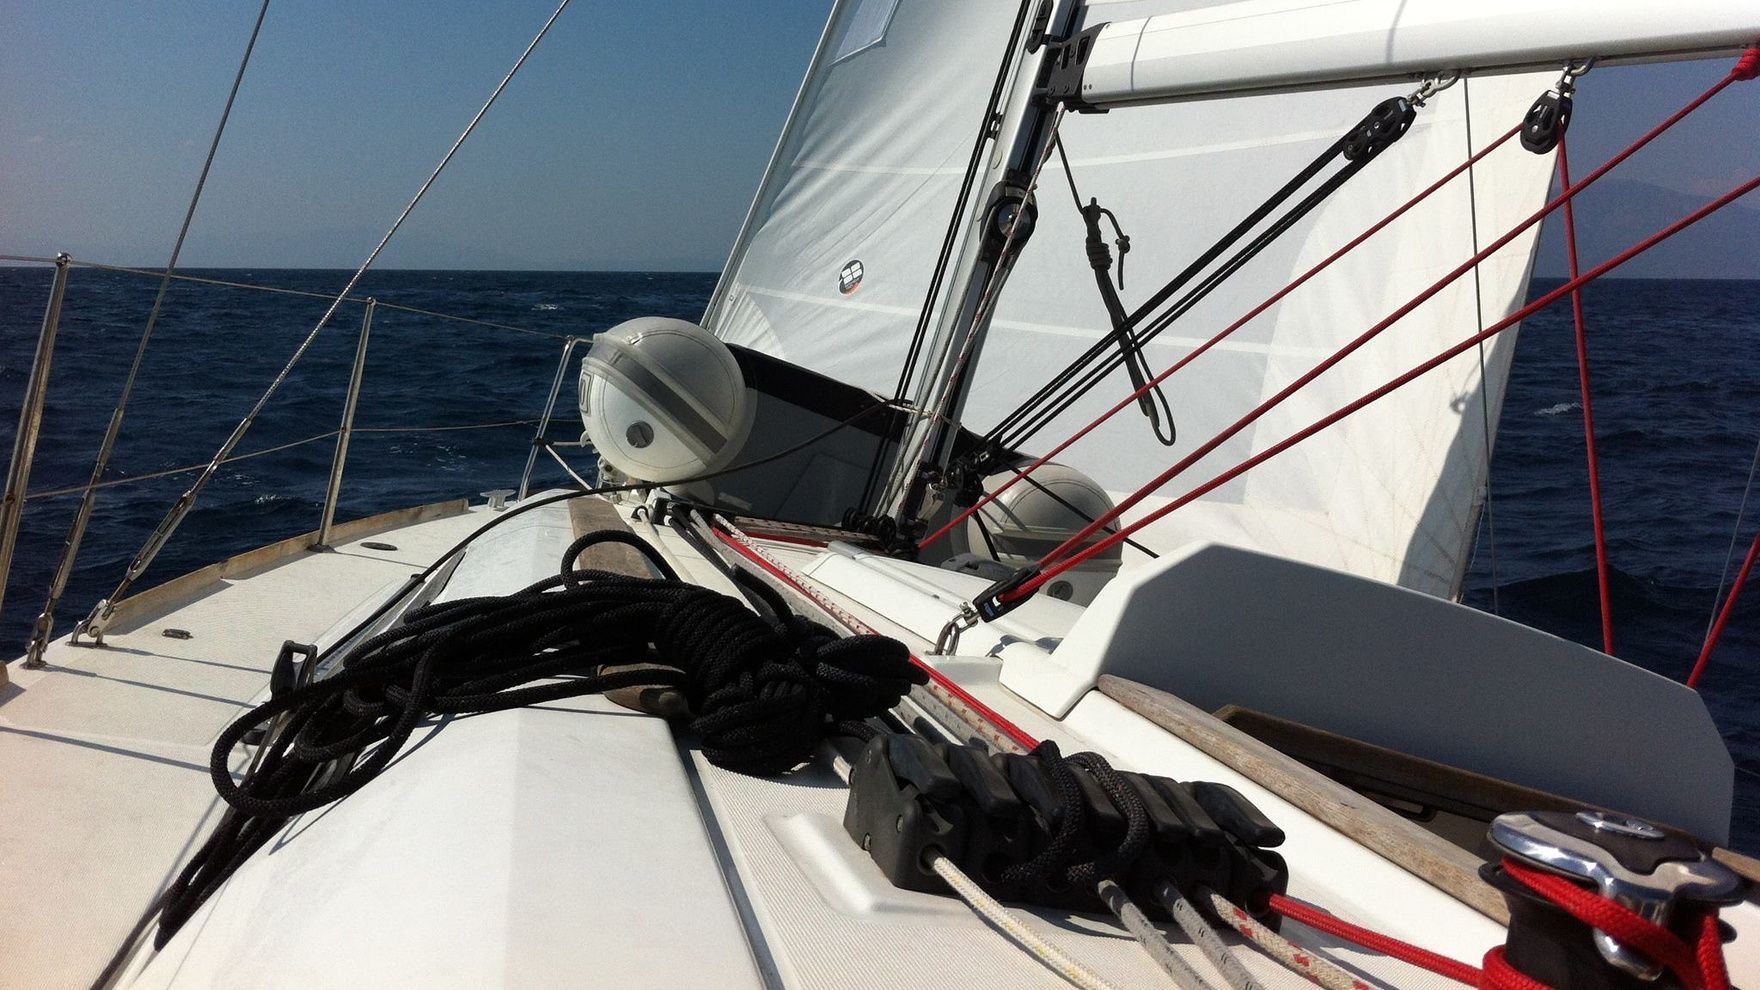 Start Yachting course in Marmaris